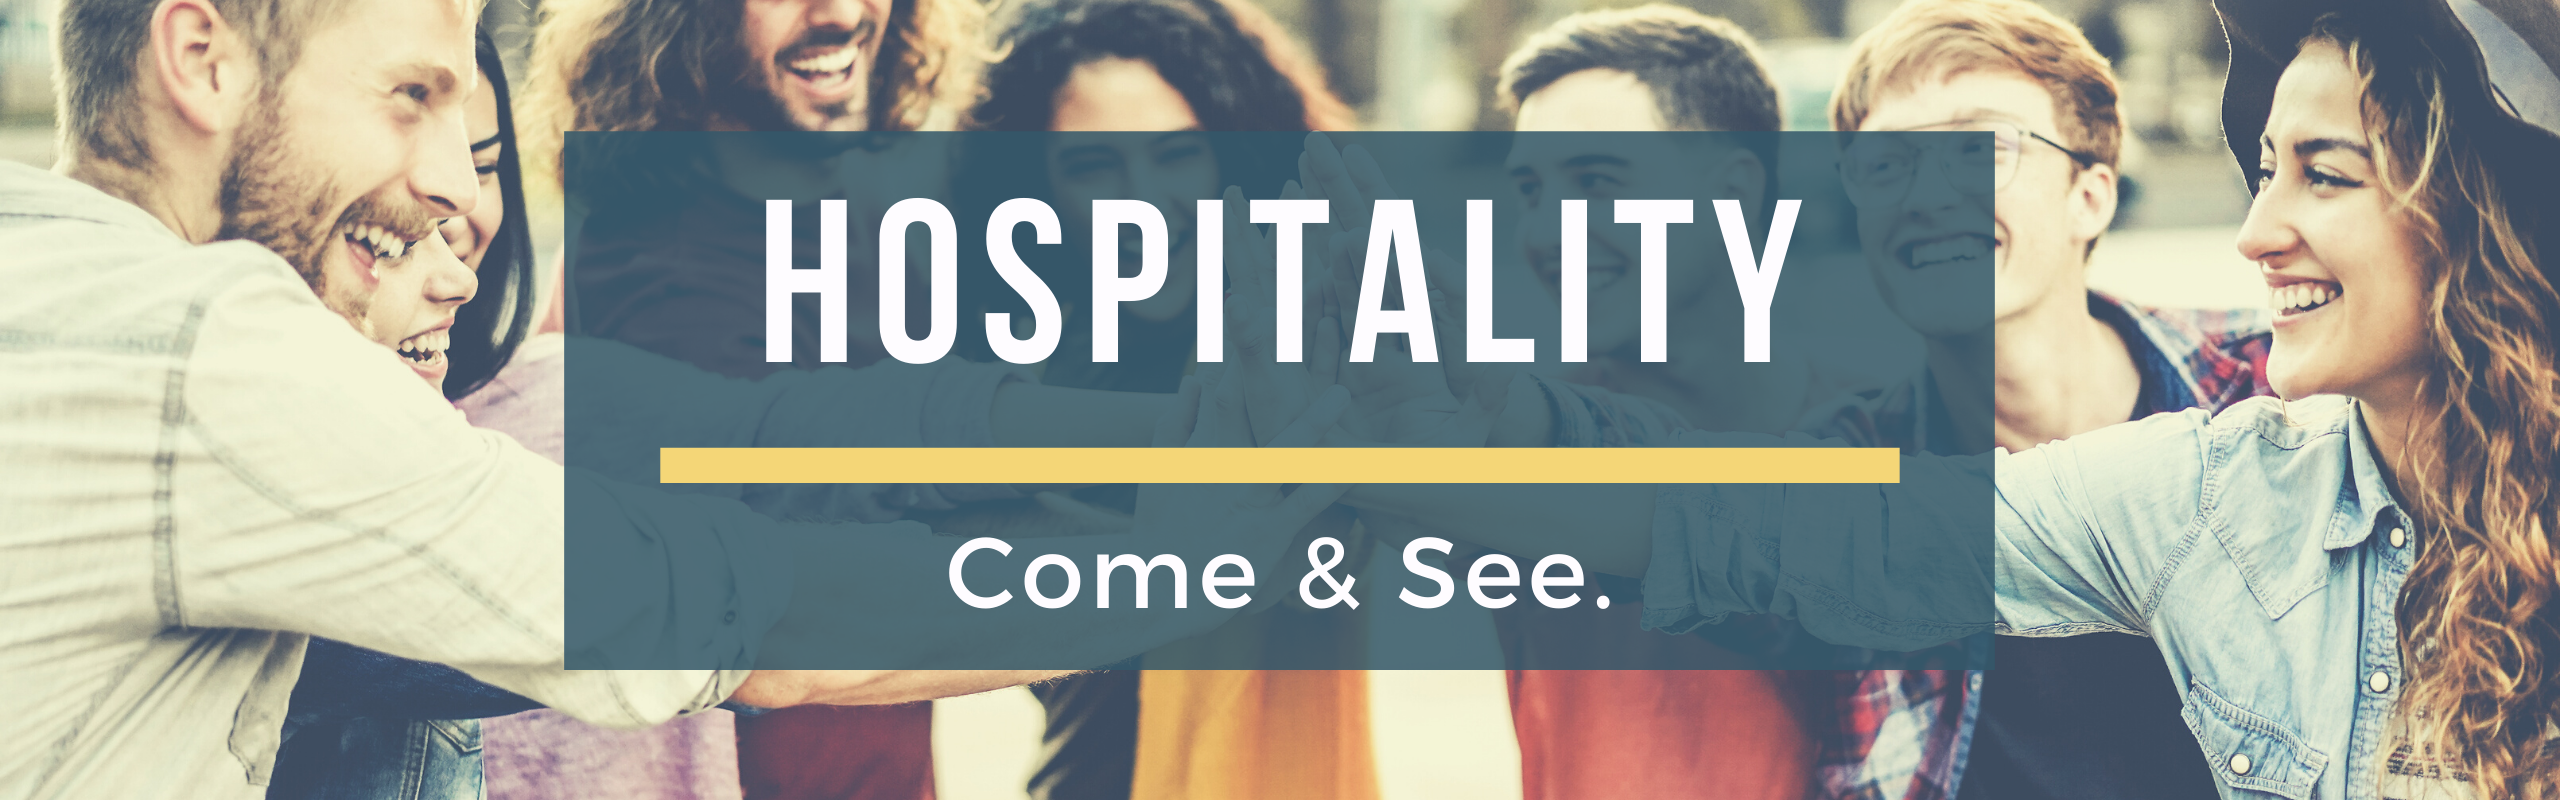 hospitality page cover 2560 x 800 web page cover